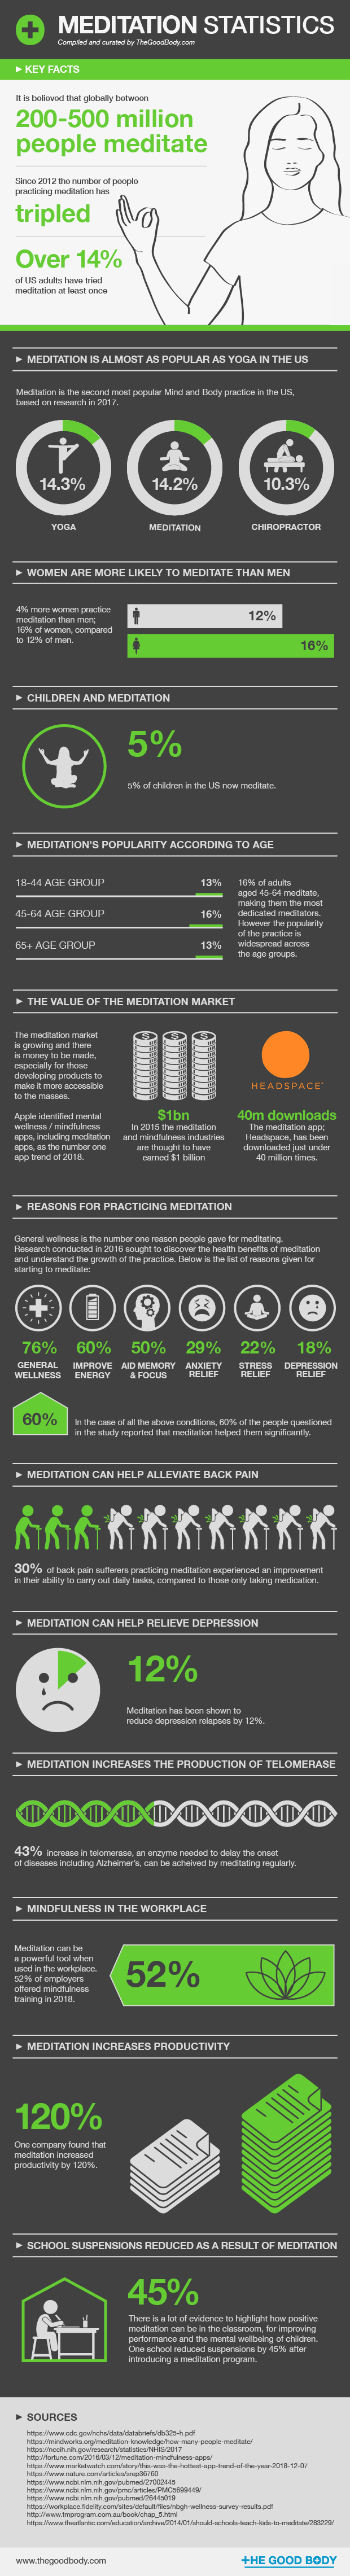 Meditation Statistics – Compiled and curated by The Good Body